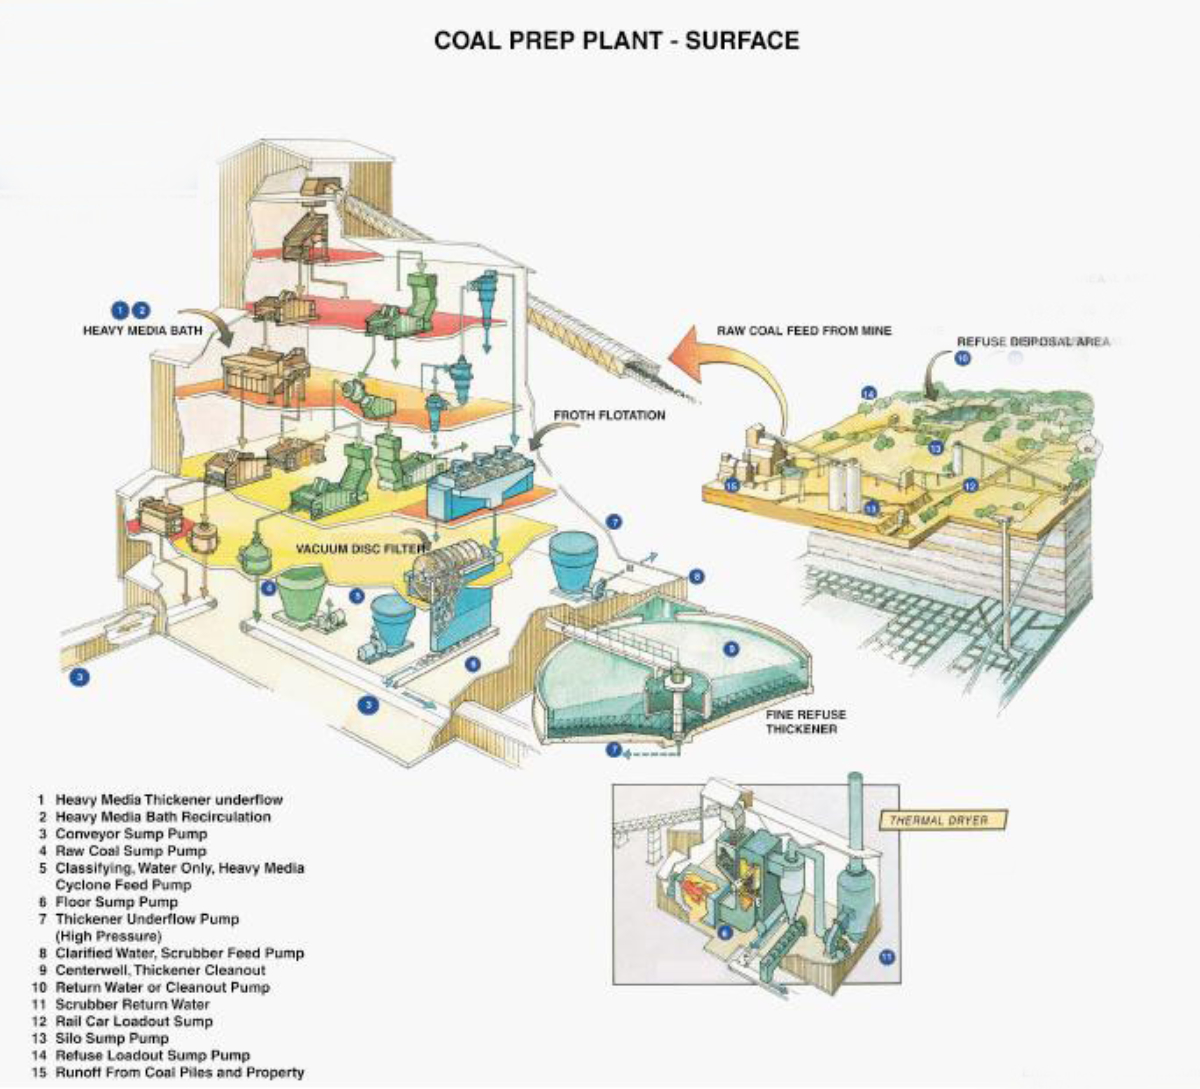 Coal Prep Plants